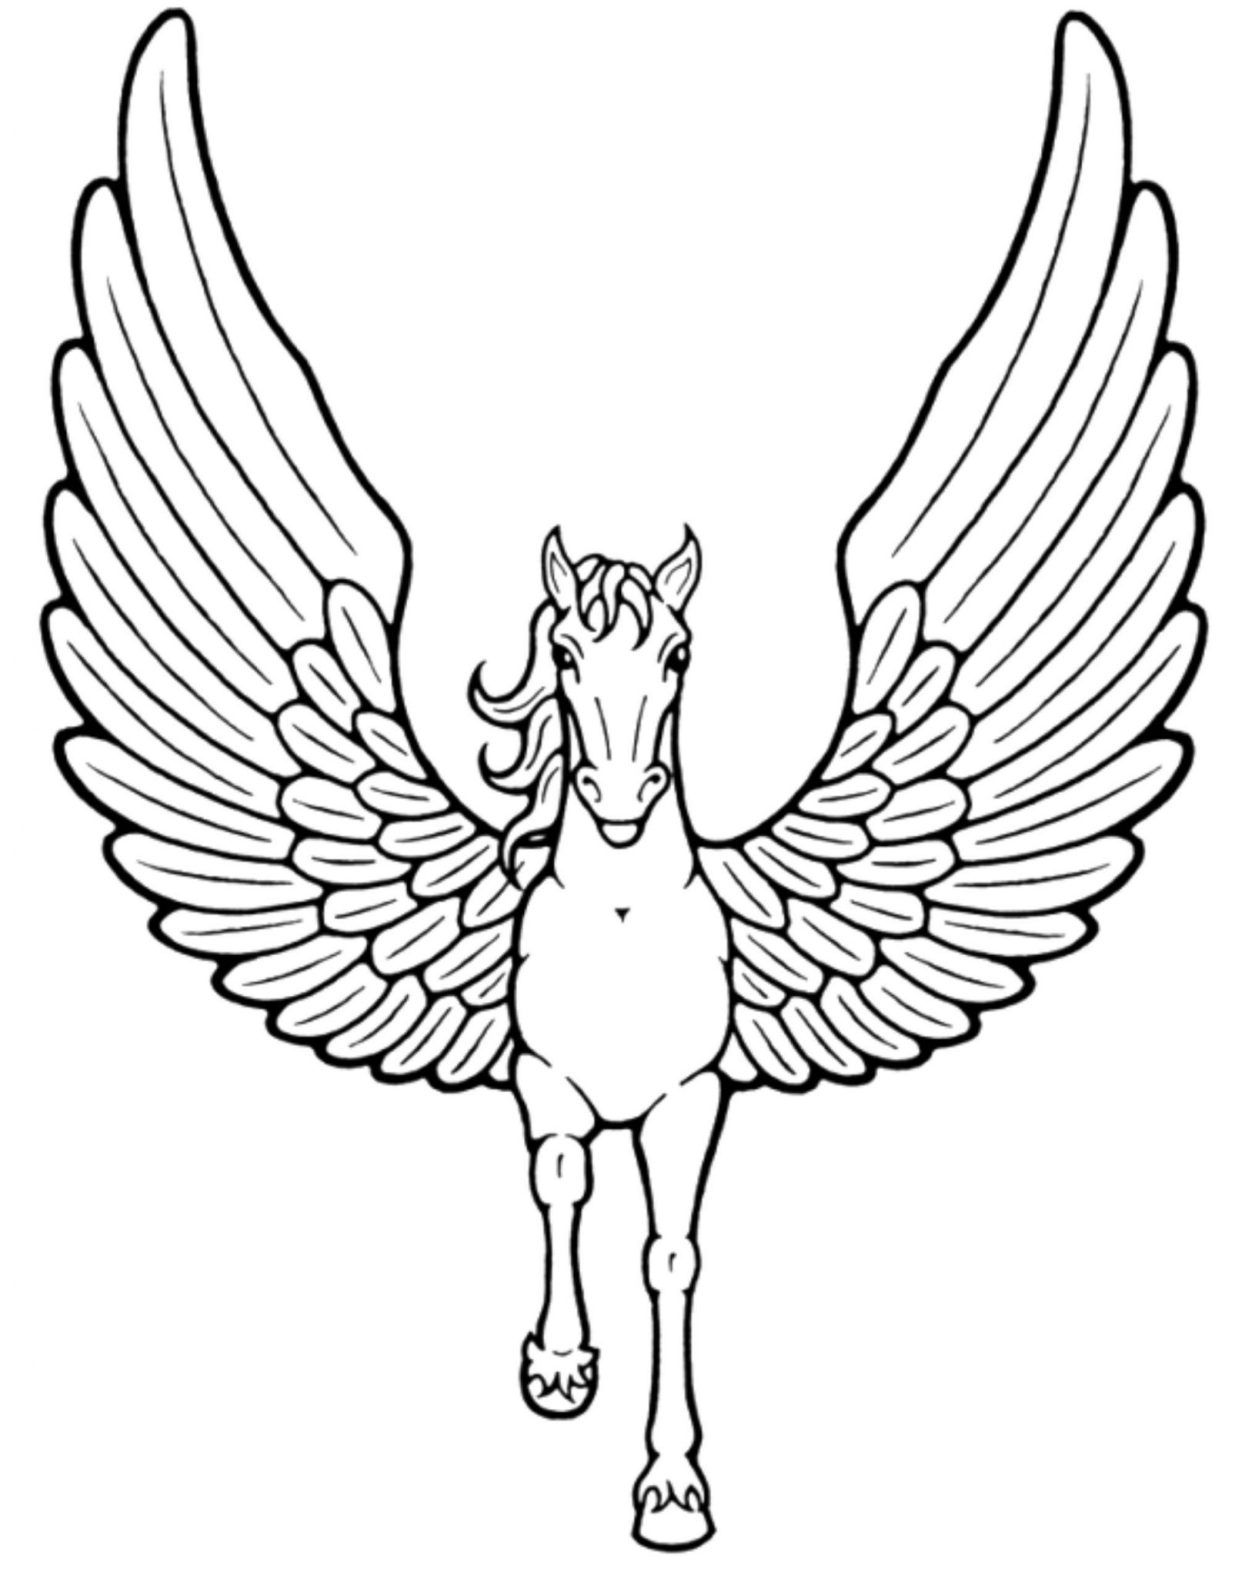 Unicorn Coloring Pages For Children